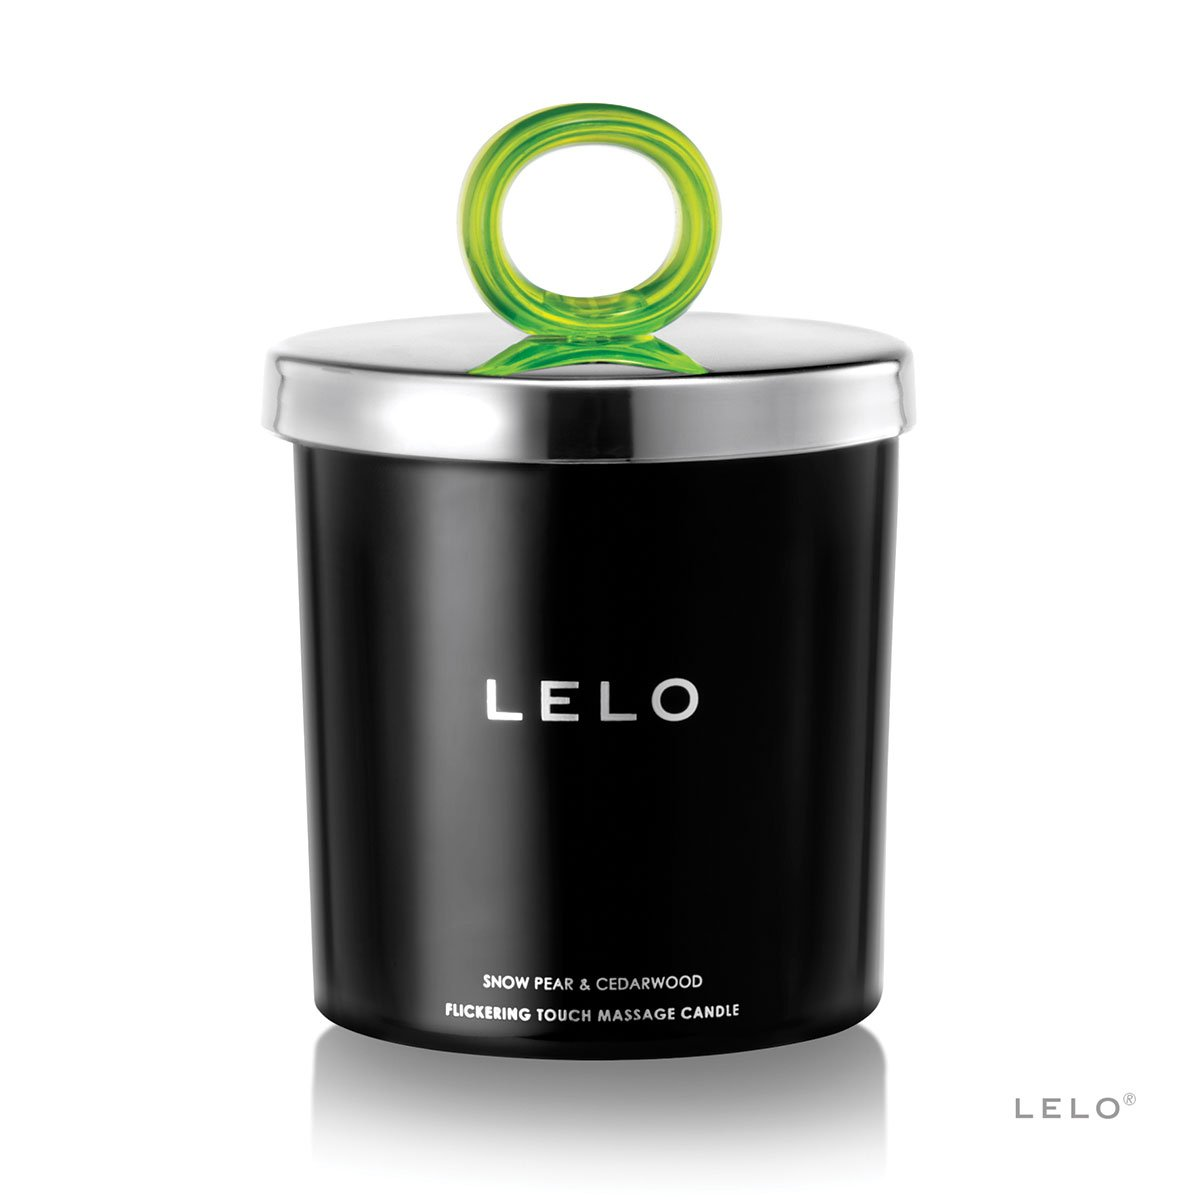 LELO Flickering Touch Massage Candle - Snow Pear-Cedarwood